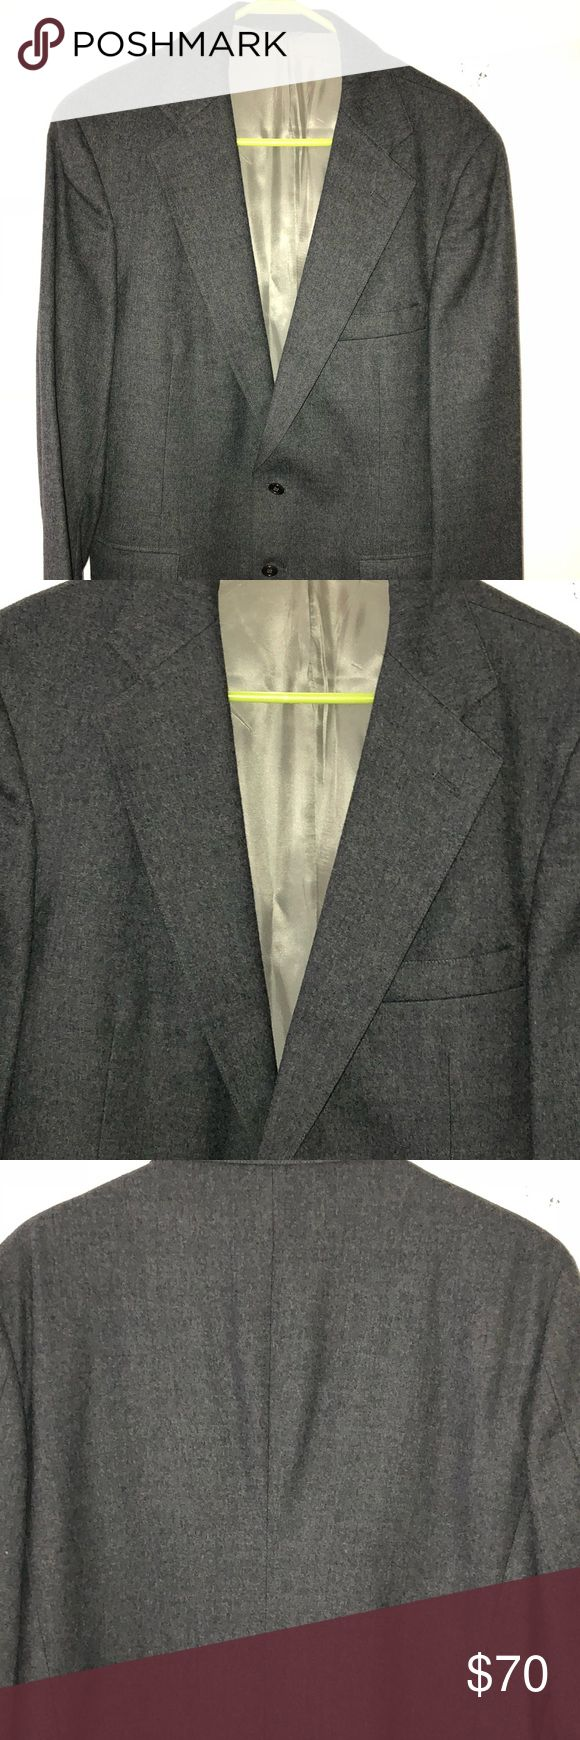 Men's Blazer Men's vintage wool blazer in excellent condition. 23 in chest 21 in Sleeve  30 in length By Ralph Lauren Polo Polo University Club Suits & Blazers Sport Coats & Blazers